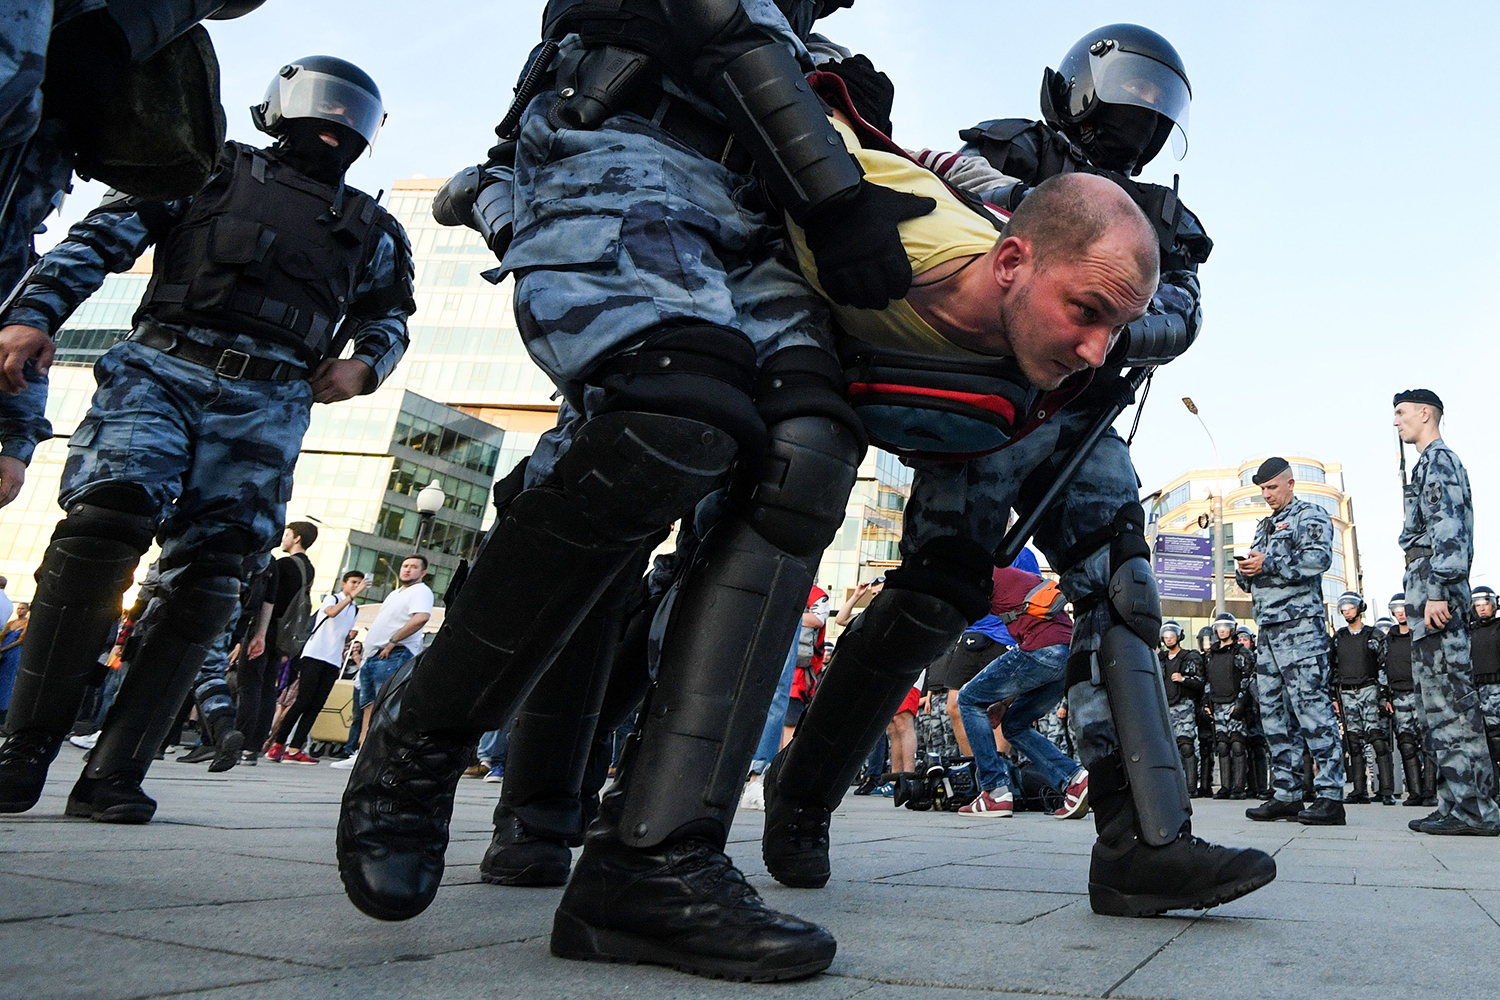 Riot police officers detain a protester during an unauthorized rally demanding that independent and opposition candidates be allowed to run for office in local elections in September, at Moscow's Trubnaya Square on July 27. KIRILL KUDRYAVTSEV/AFP/Getty Images